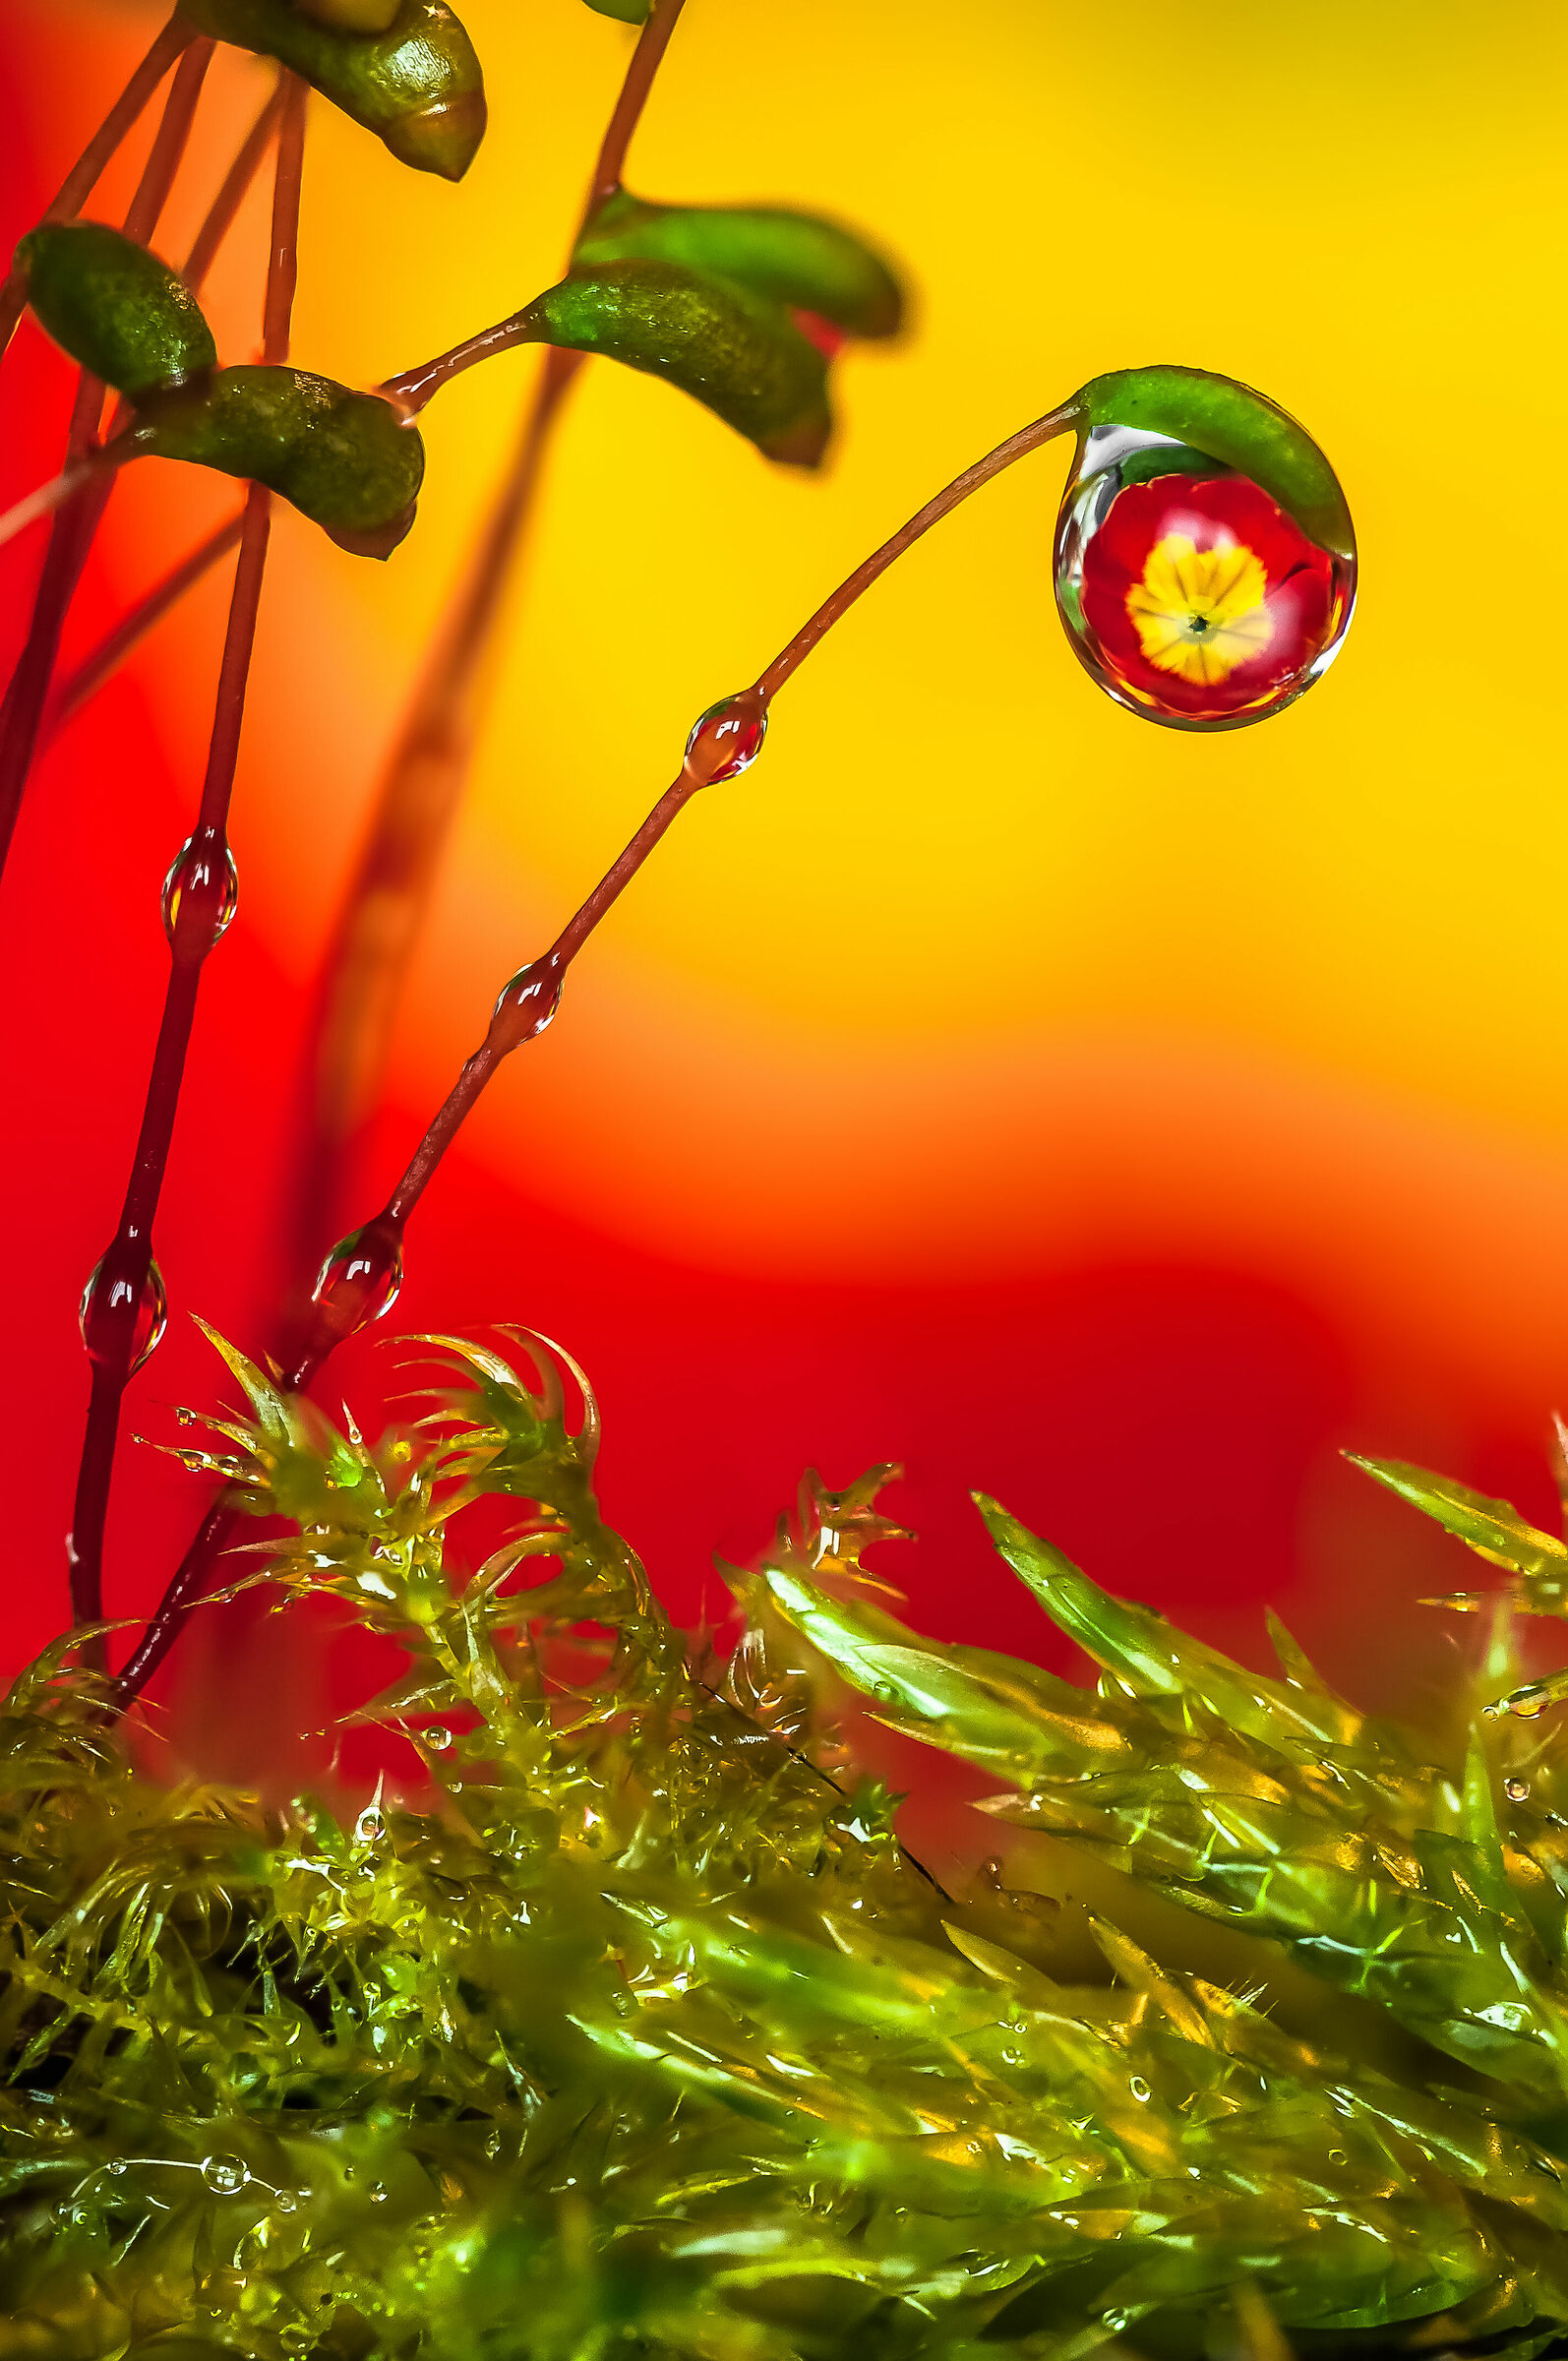 Drops & Flowers in macro photography...